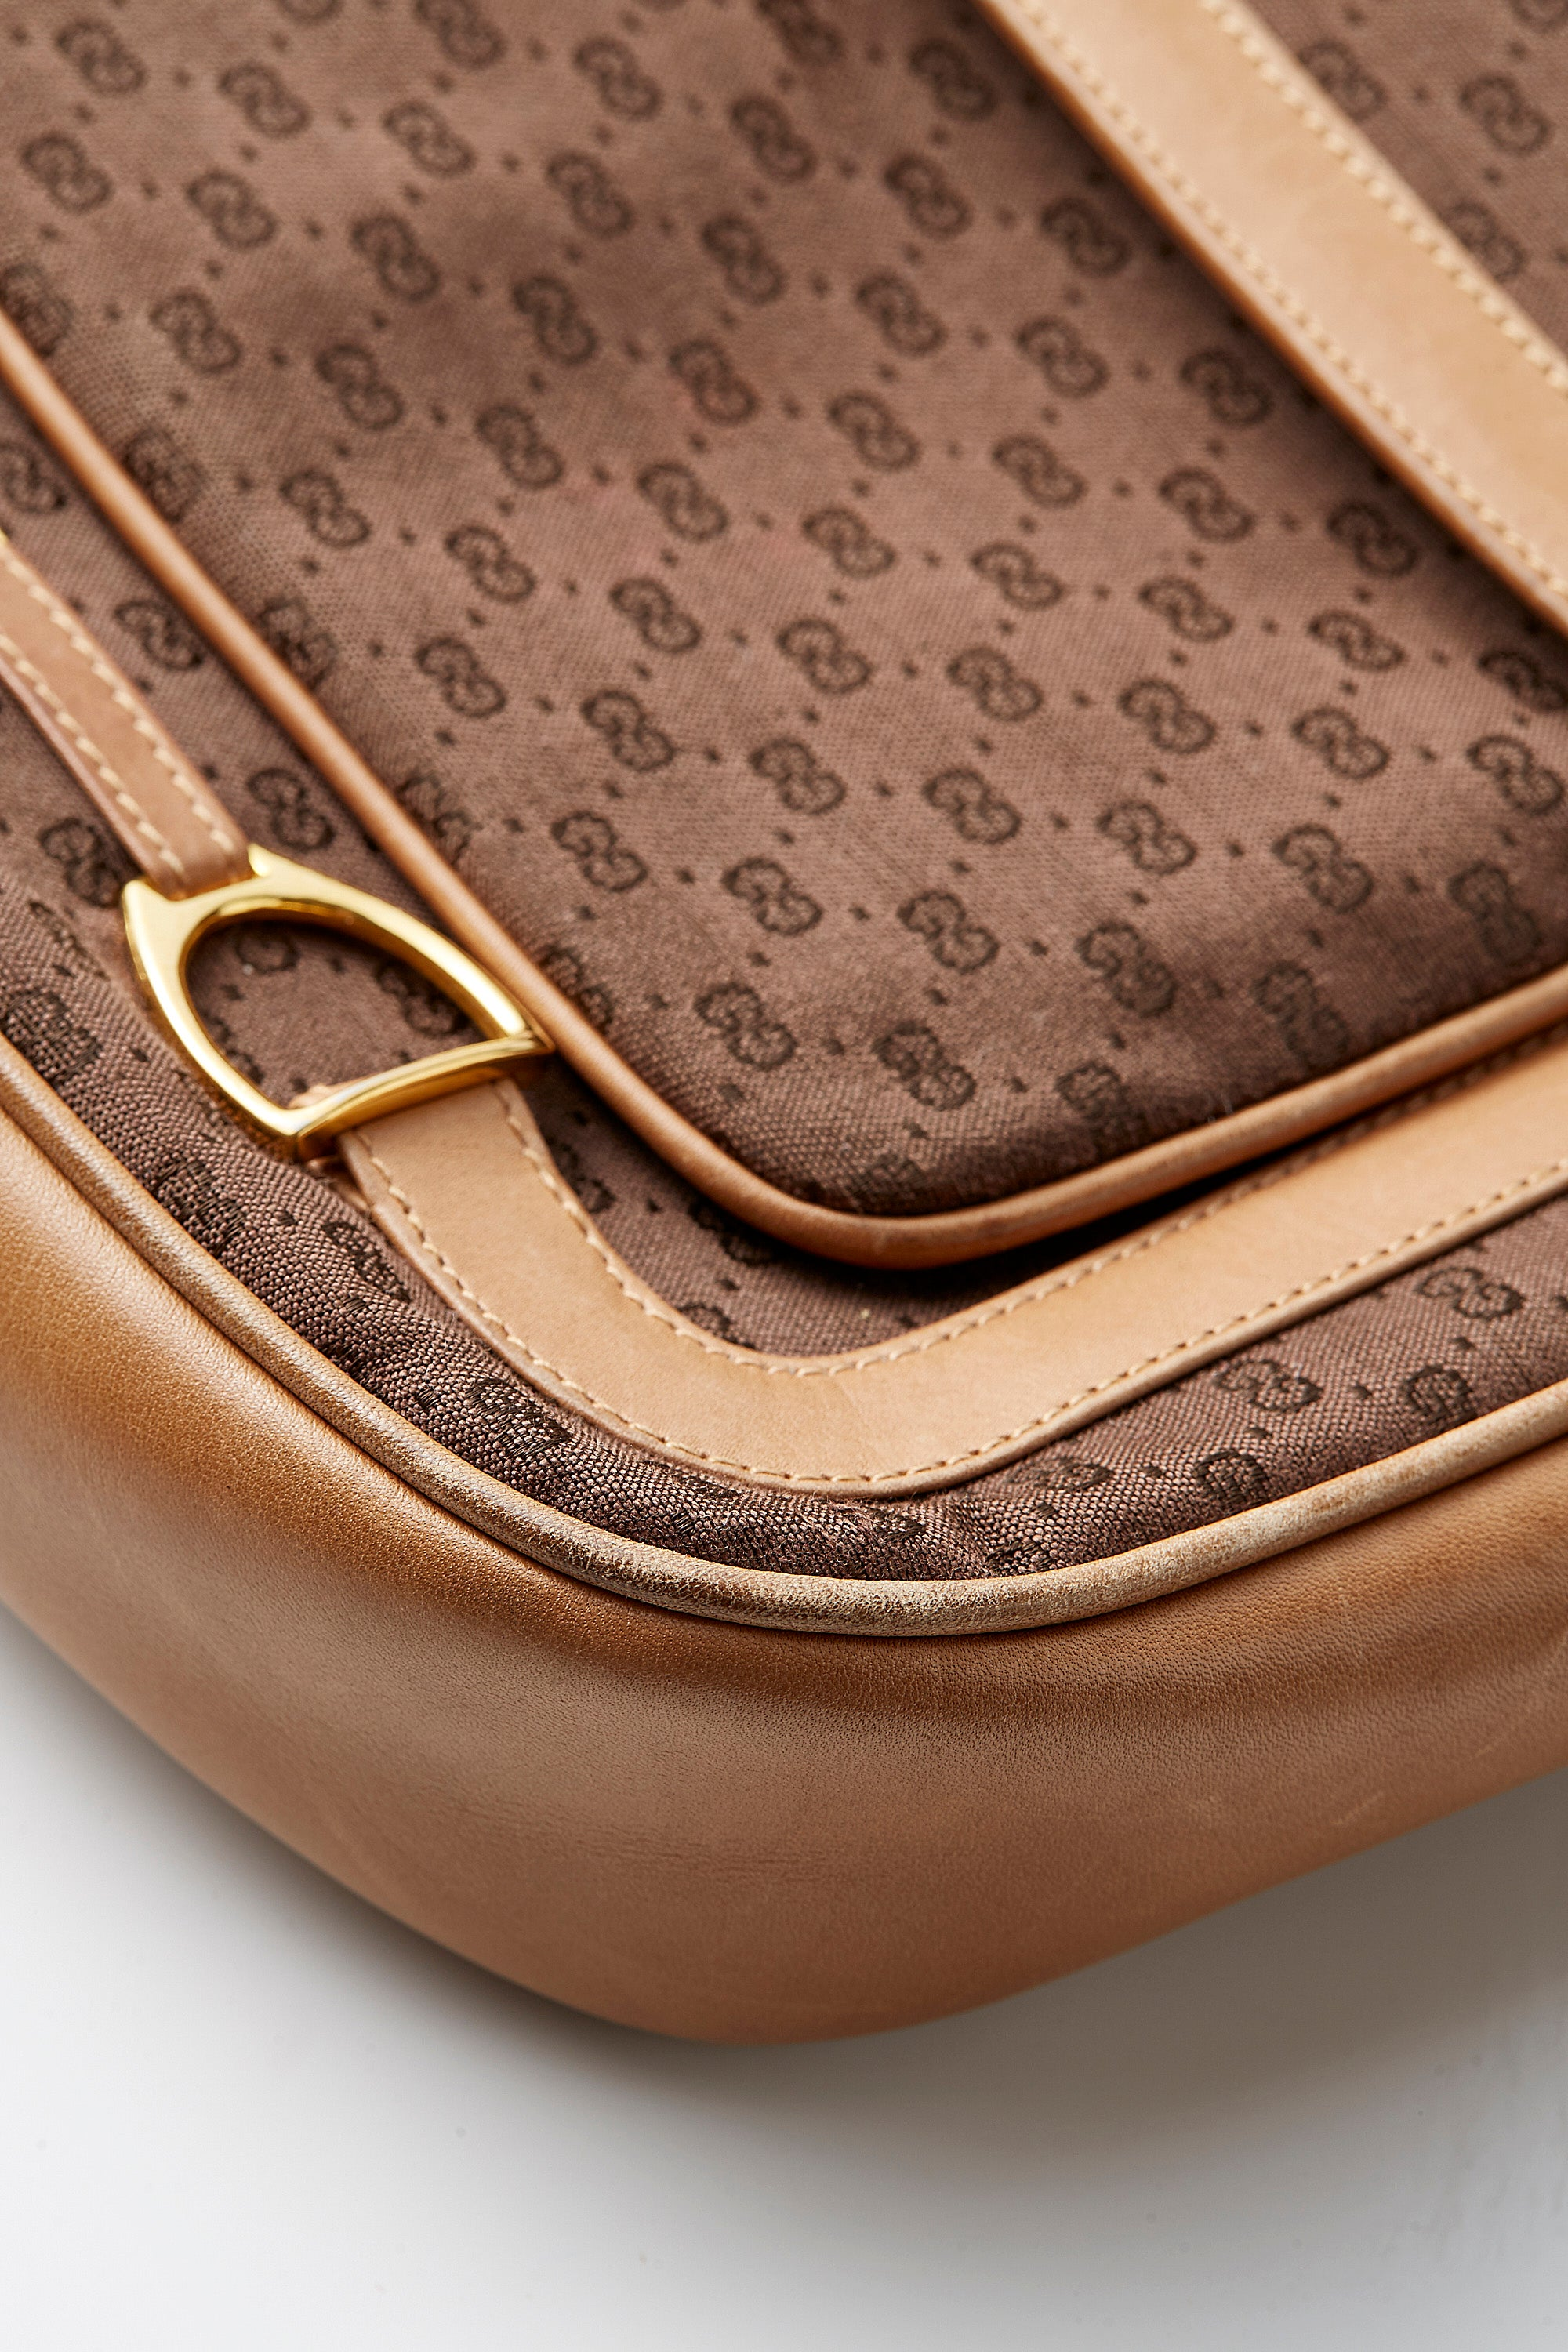 Gucci<br>1970's tan leather & brown monogram logo shoulder bag